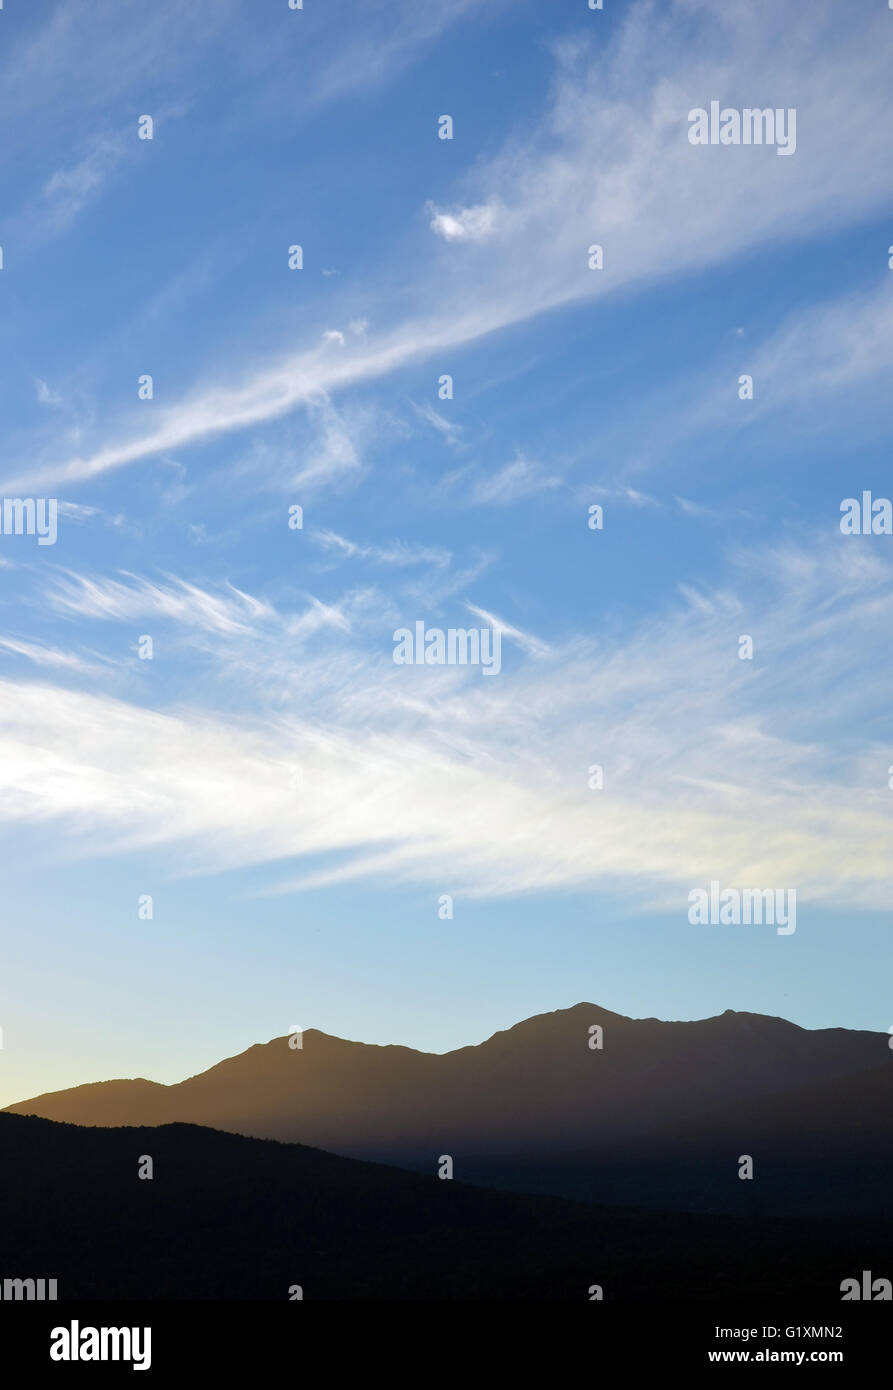 Zigzag cloud patterns in the sky above mountains at dusk - Stock Image